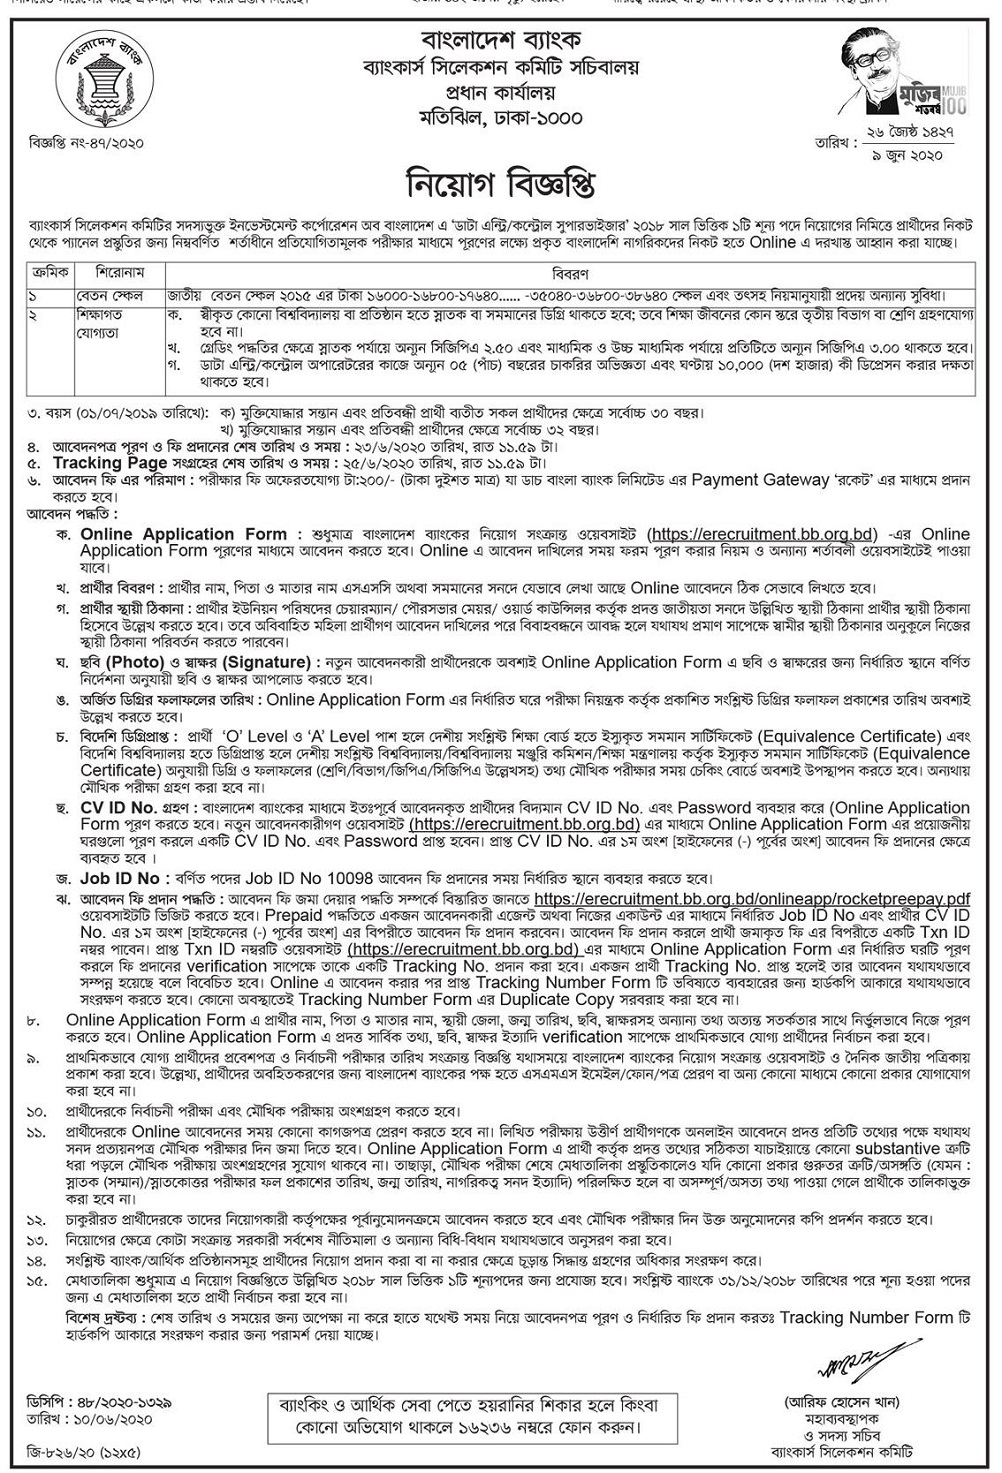 Bangladesh Bank BB Job Circular 2020